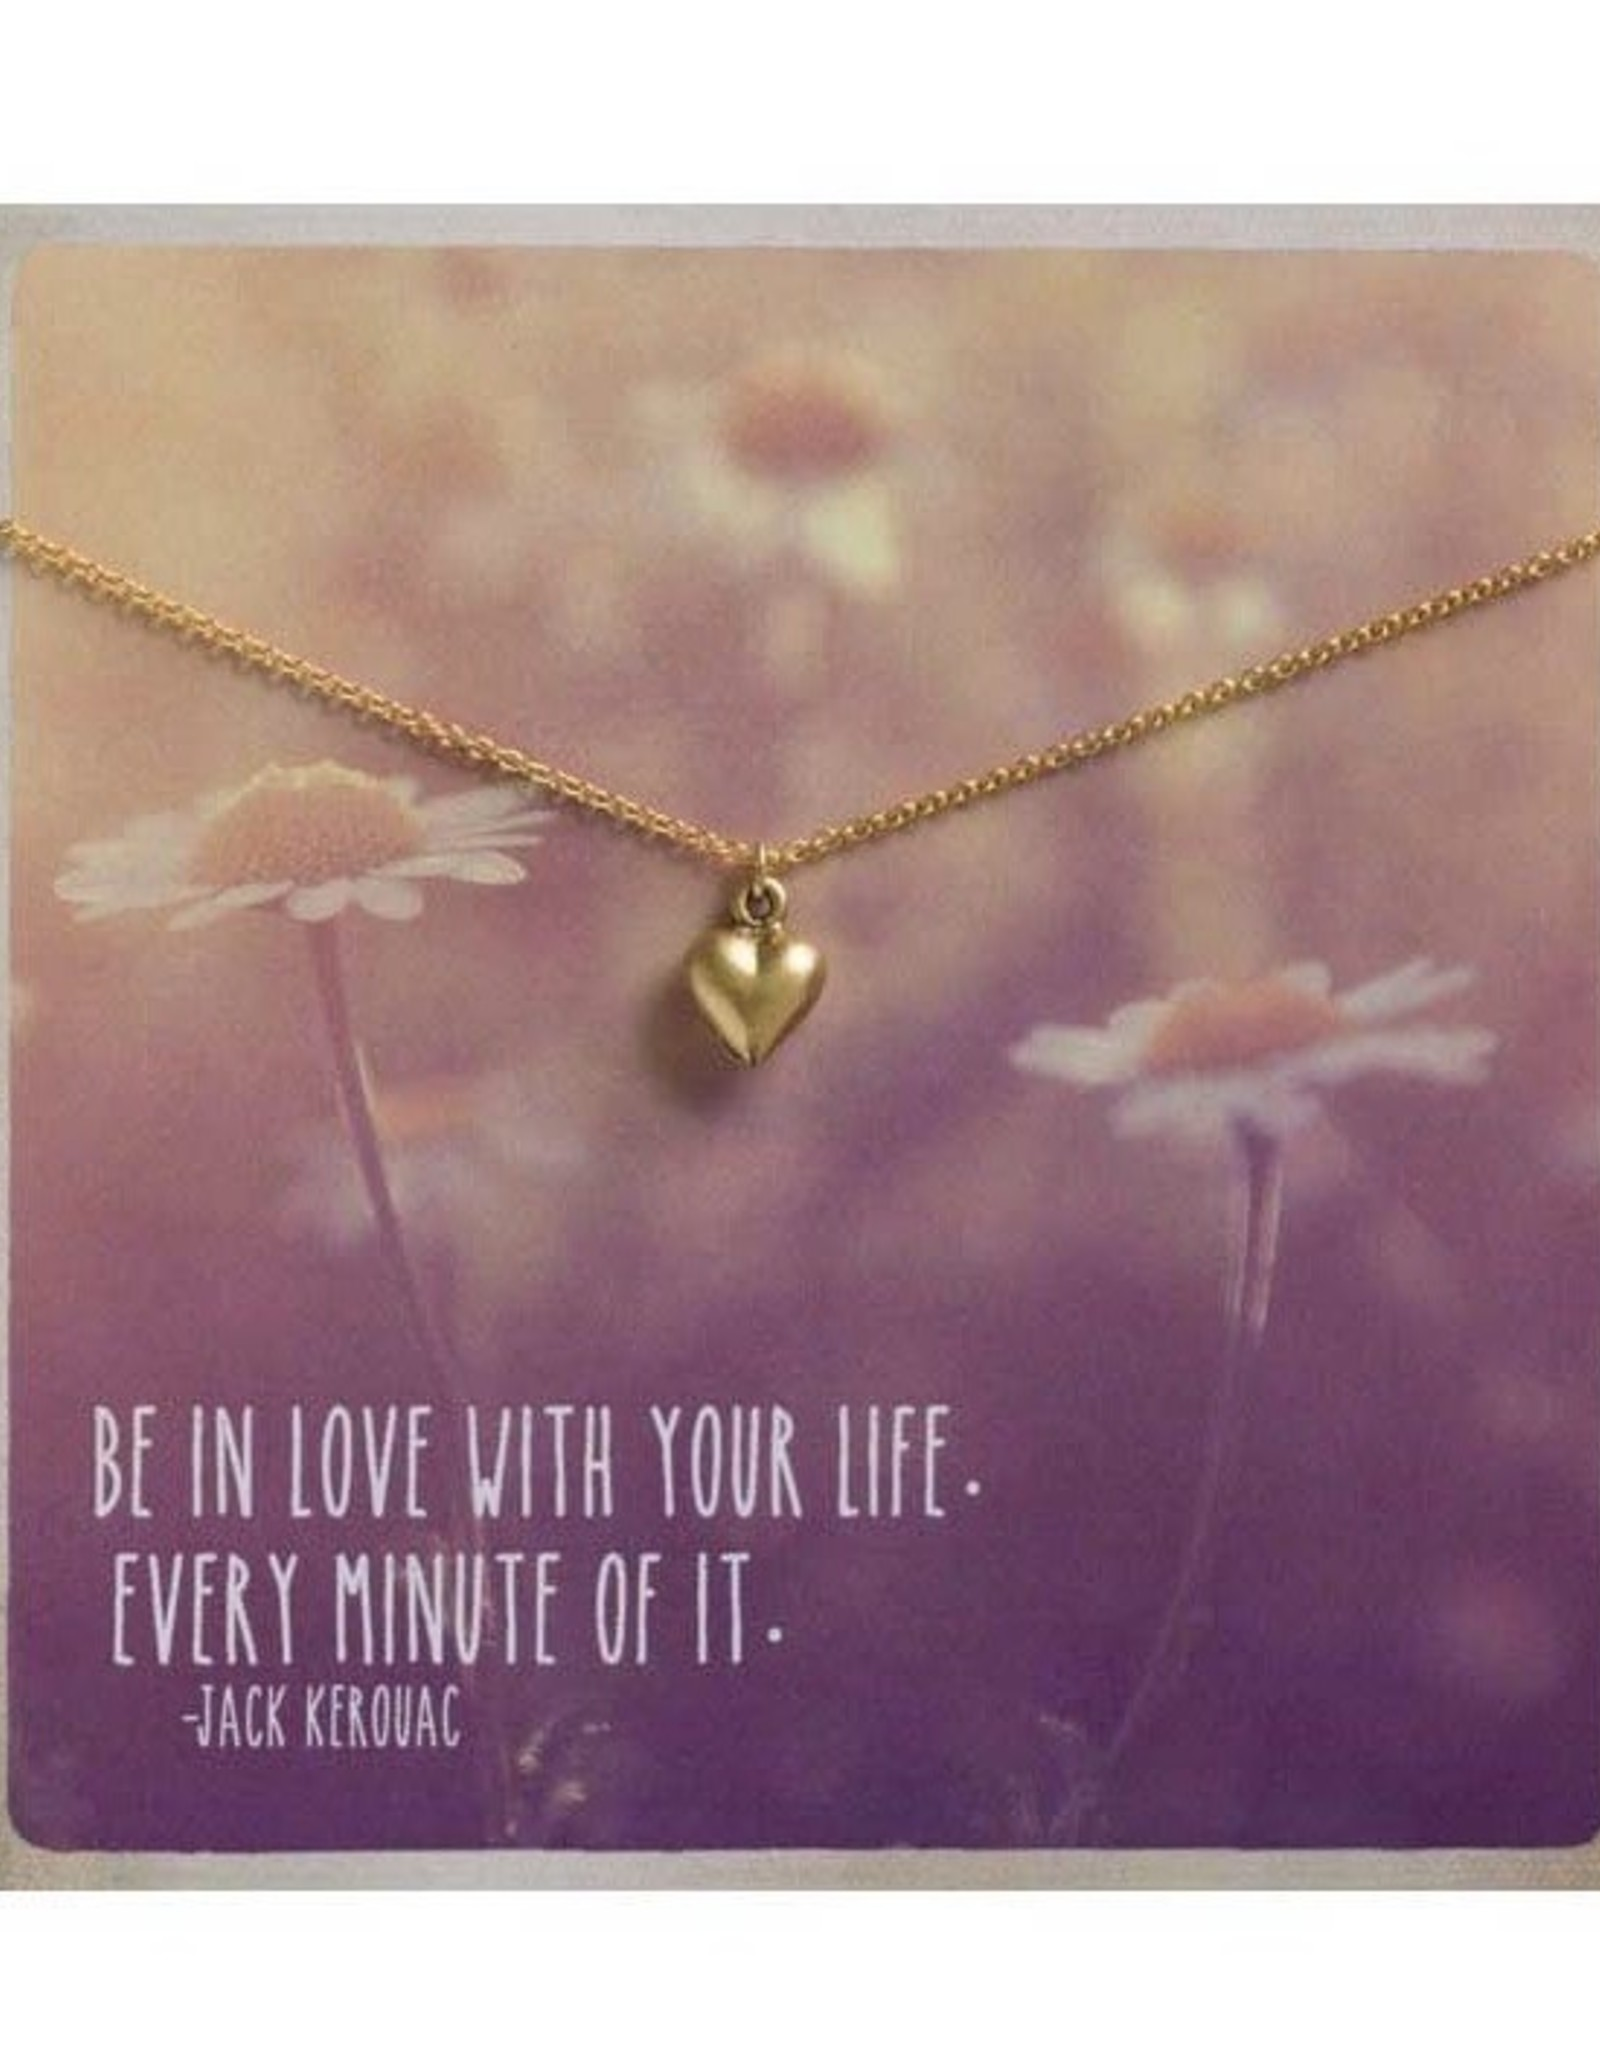 AMANO studio HEART Gift Charm Necklace, 24k Gold Plated